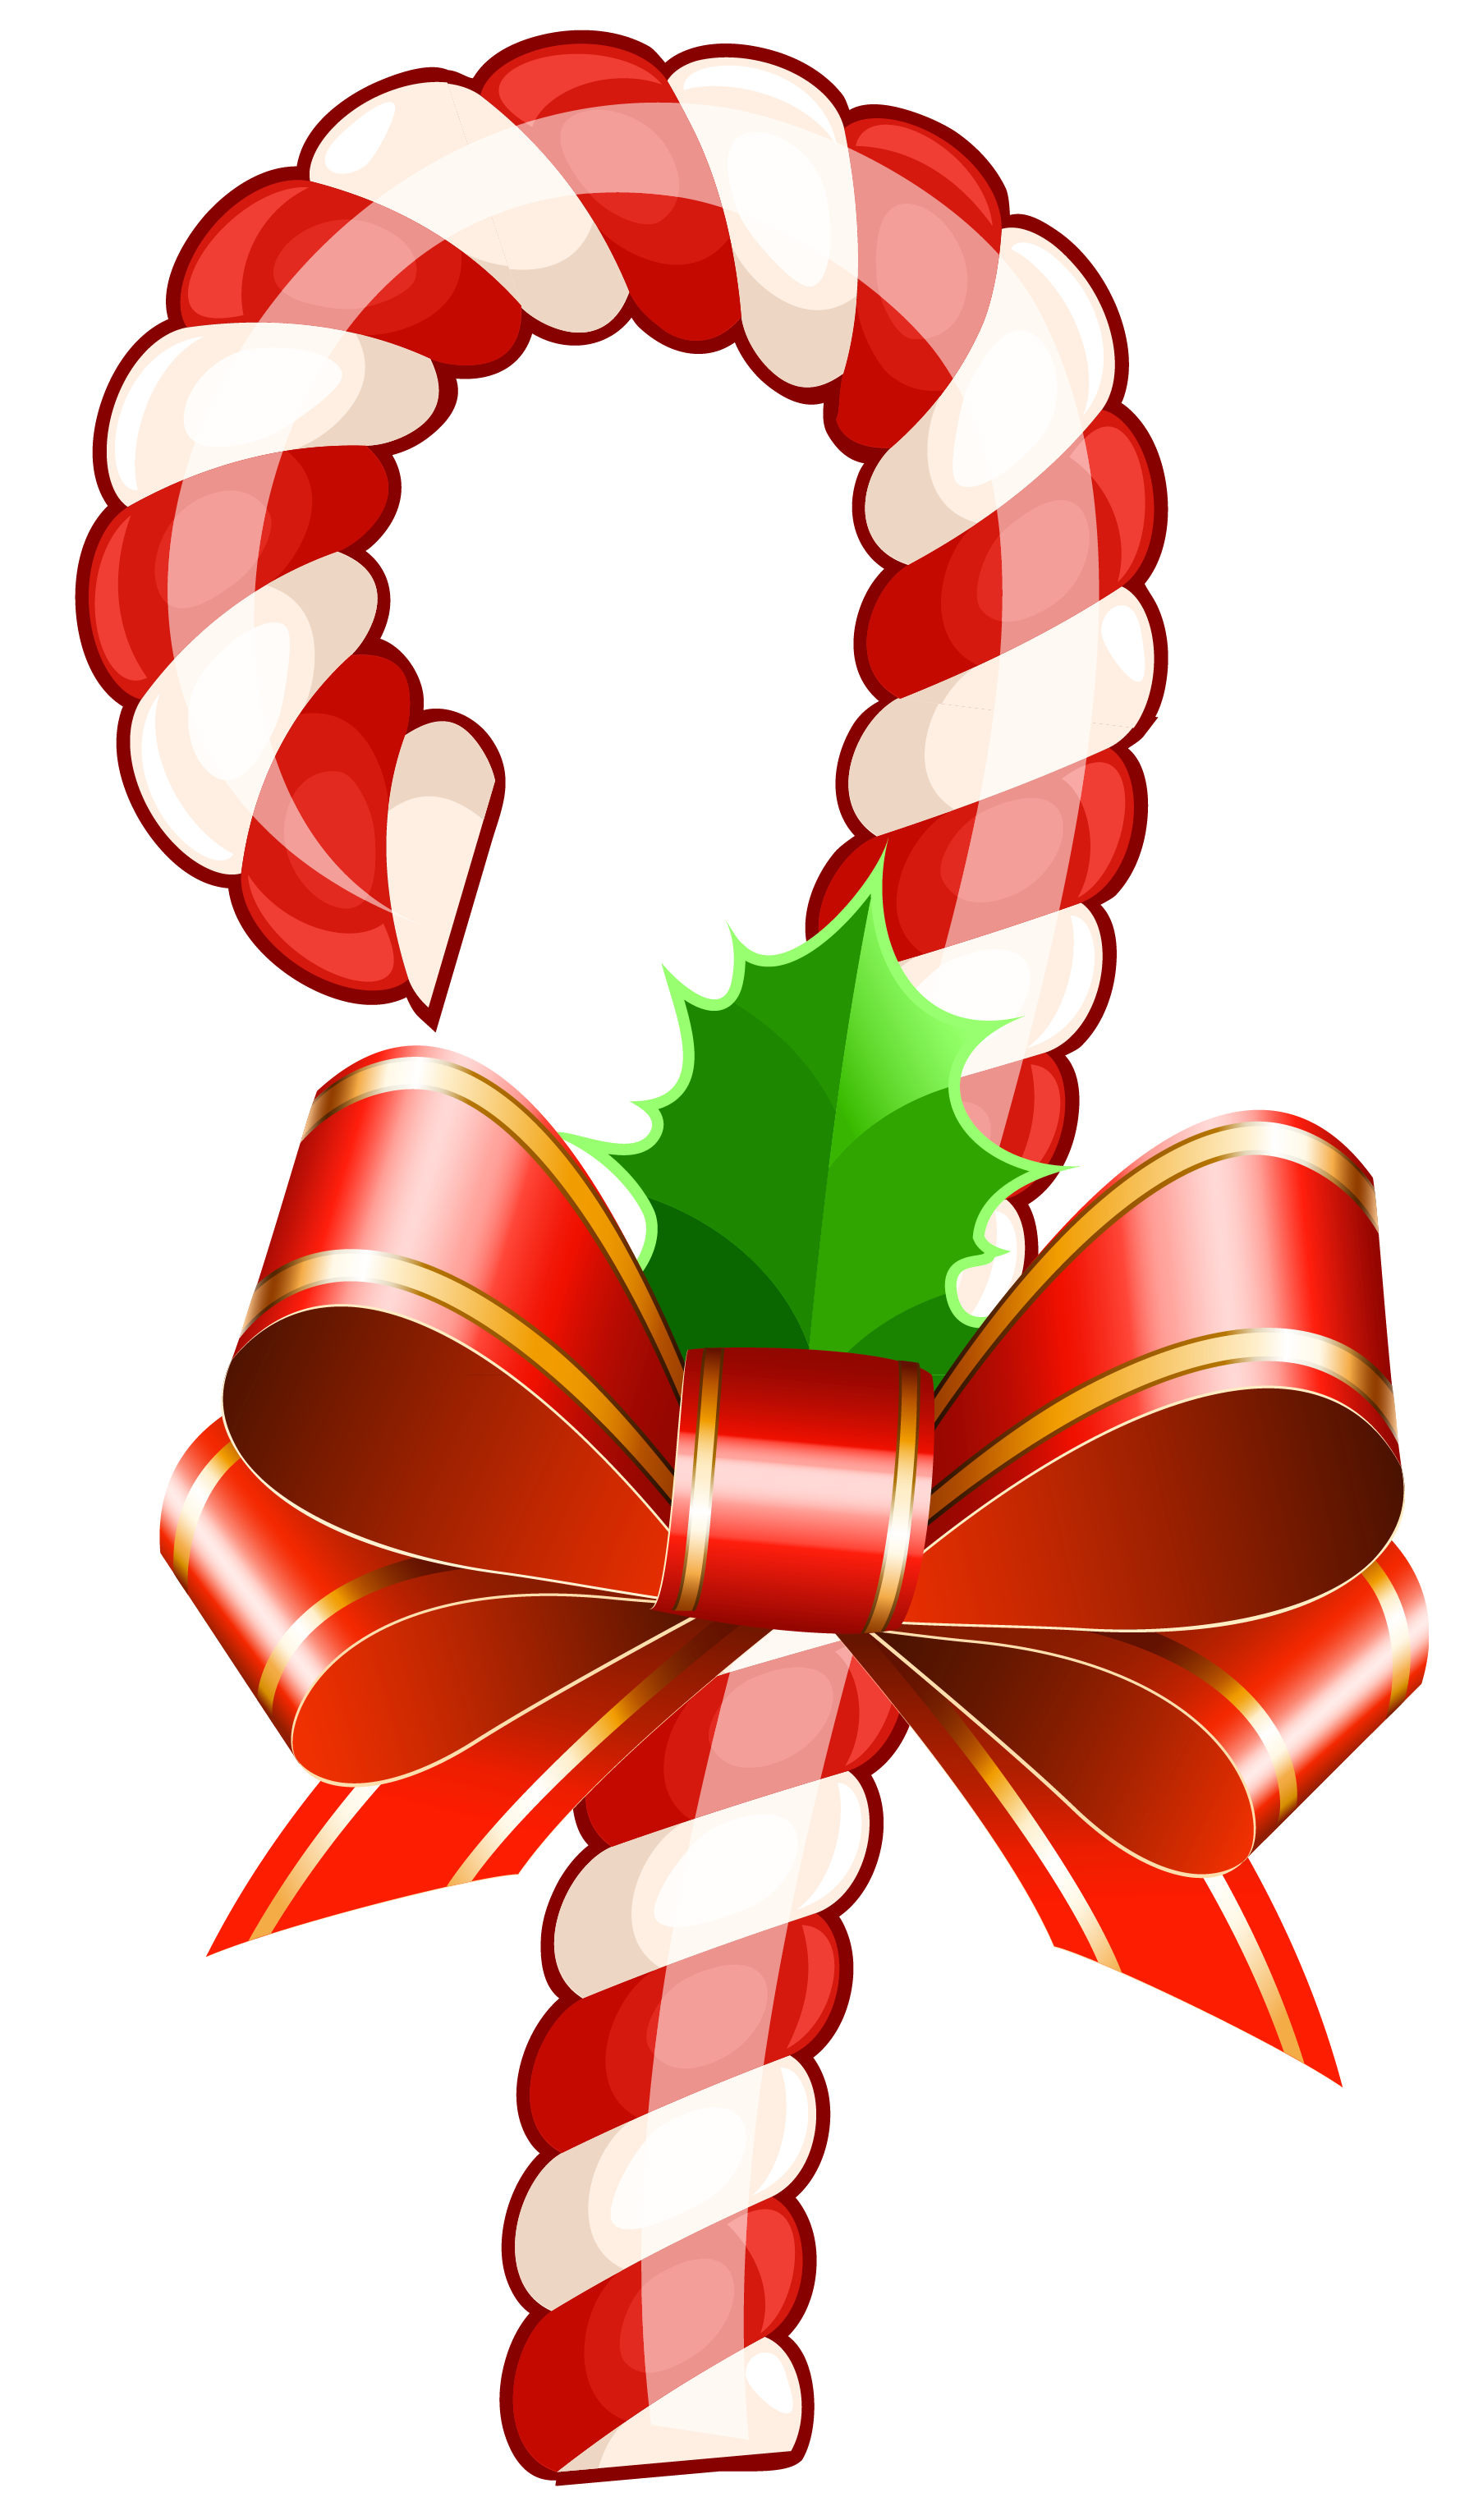 Free clipart christmas letter r with candy canes black and white Free Candy Cane Picture, Download Free Clip Art, Free Clip Art on ... black and white